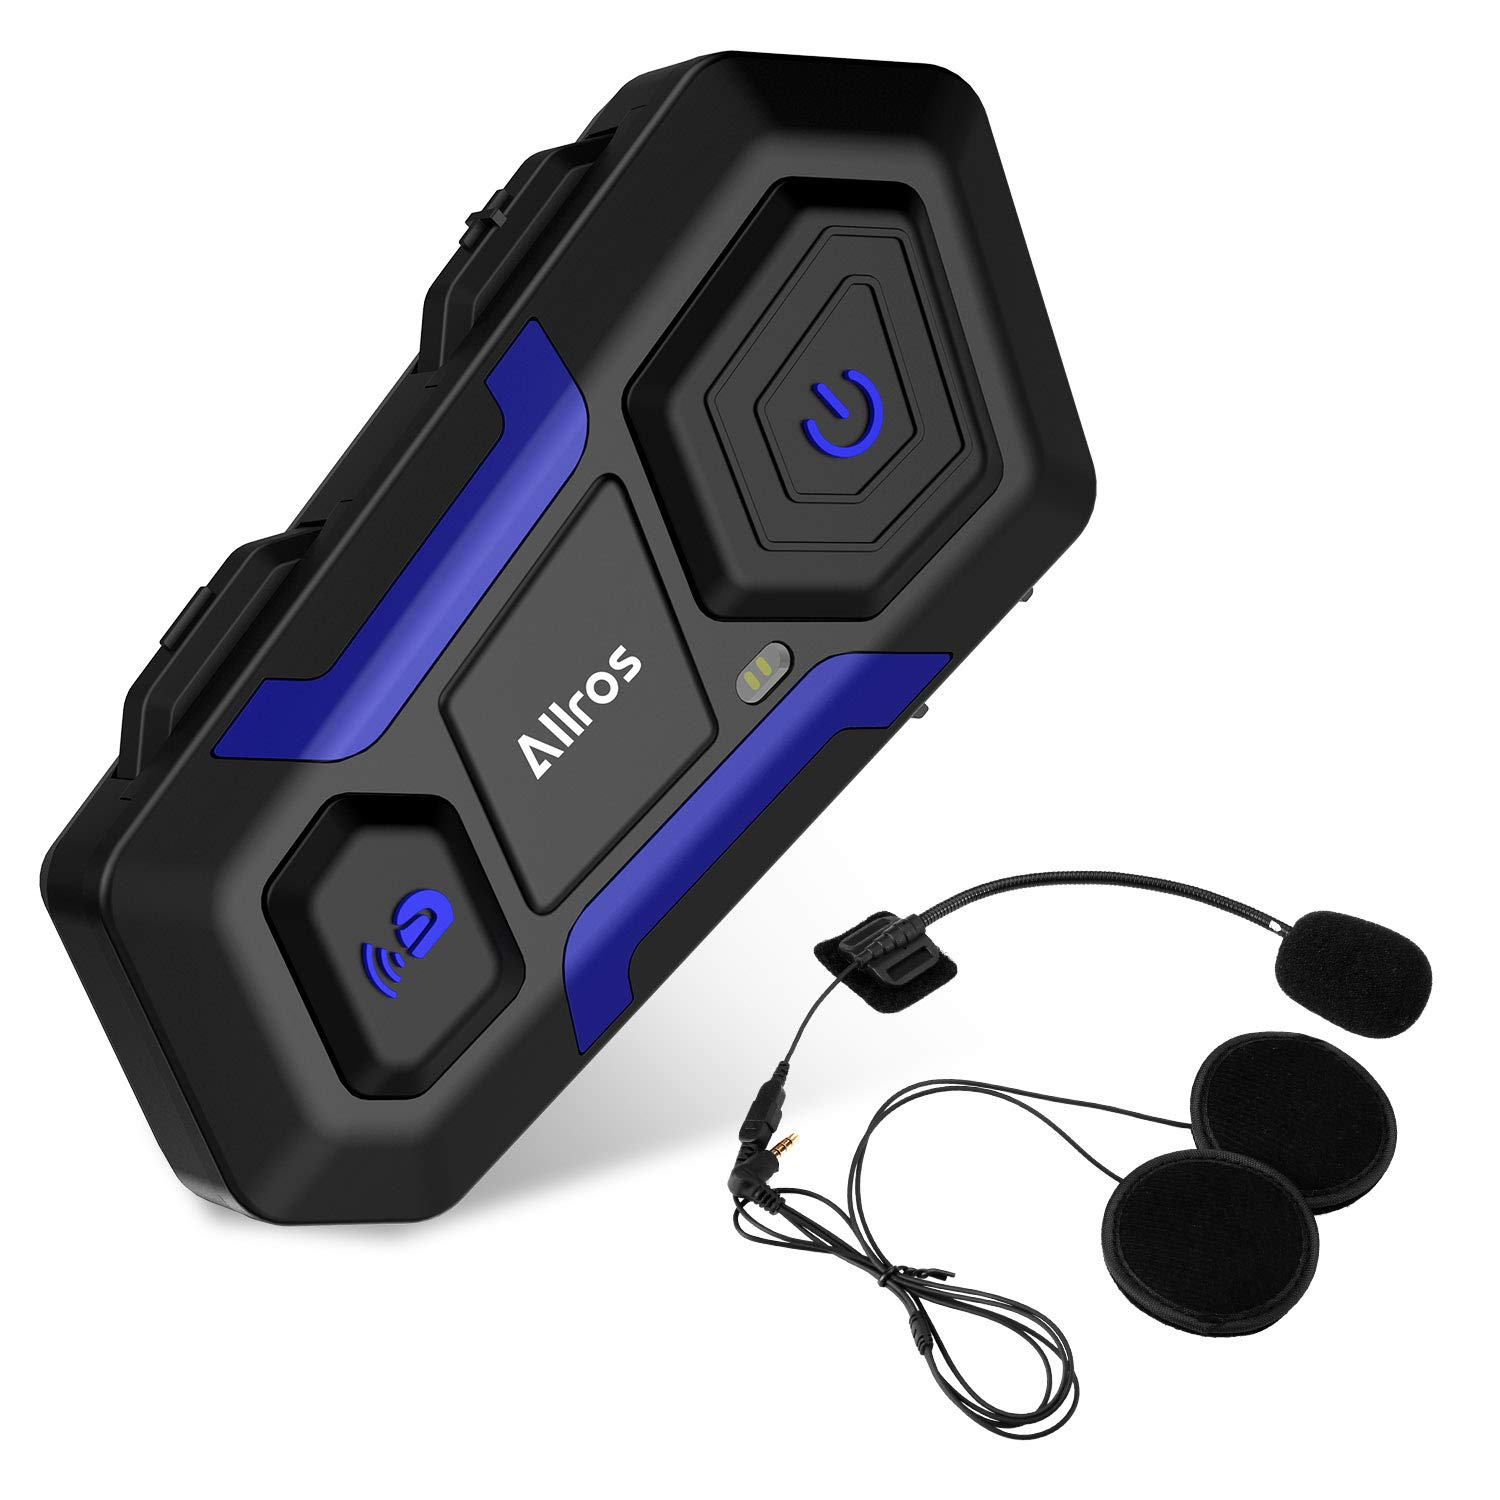 ALLROS T10 Bluetooth 3.0 Motorcycle Helmet Intercom Wireless Communication Headset Supports up to 3 Riders Hands-Free Group Call Communication for Motorbike Bike ATV Car Skiing Single Headset